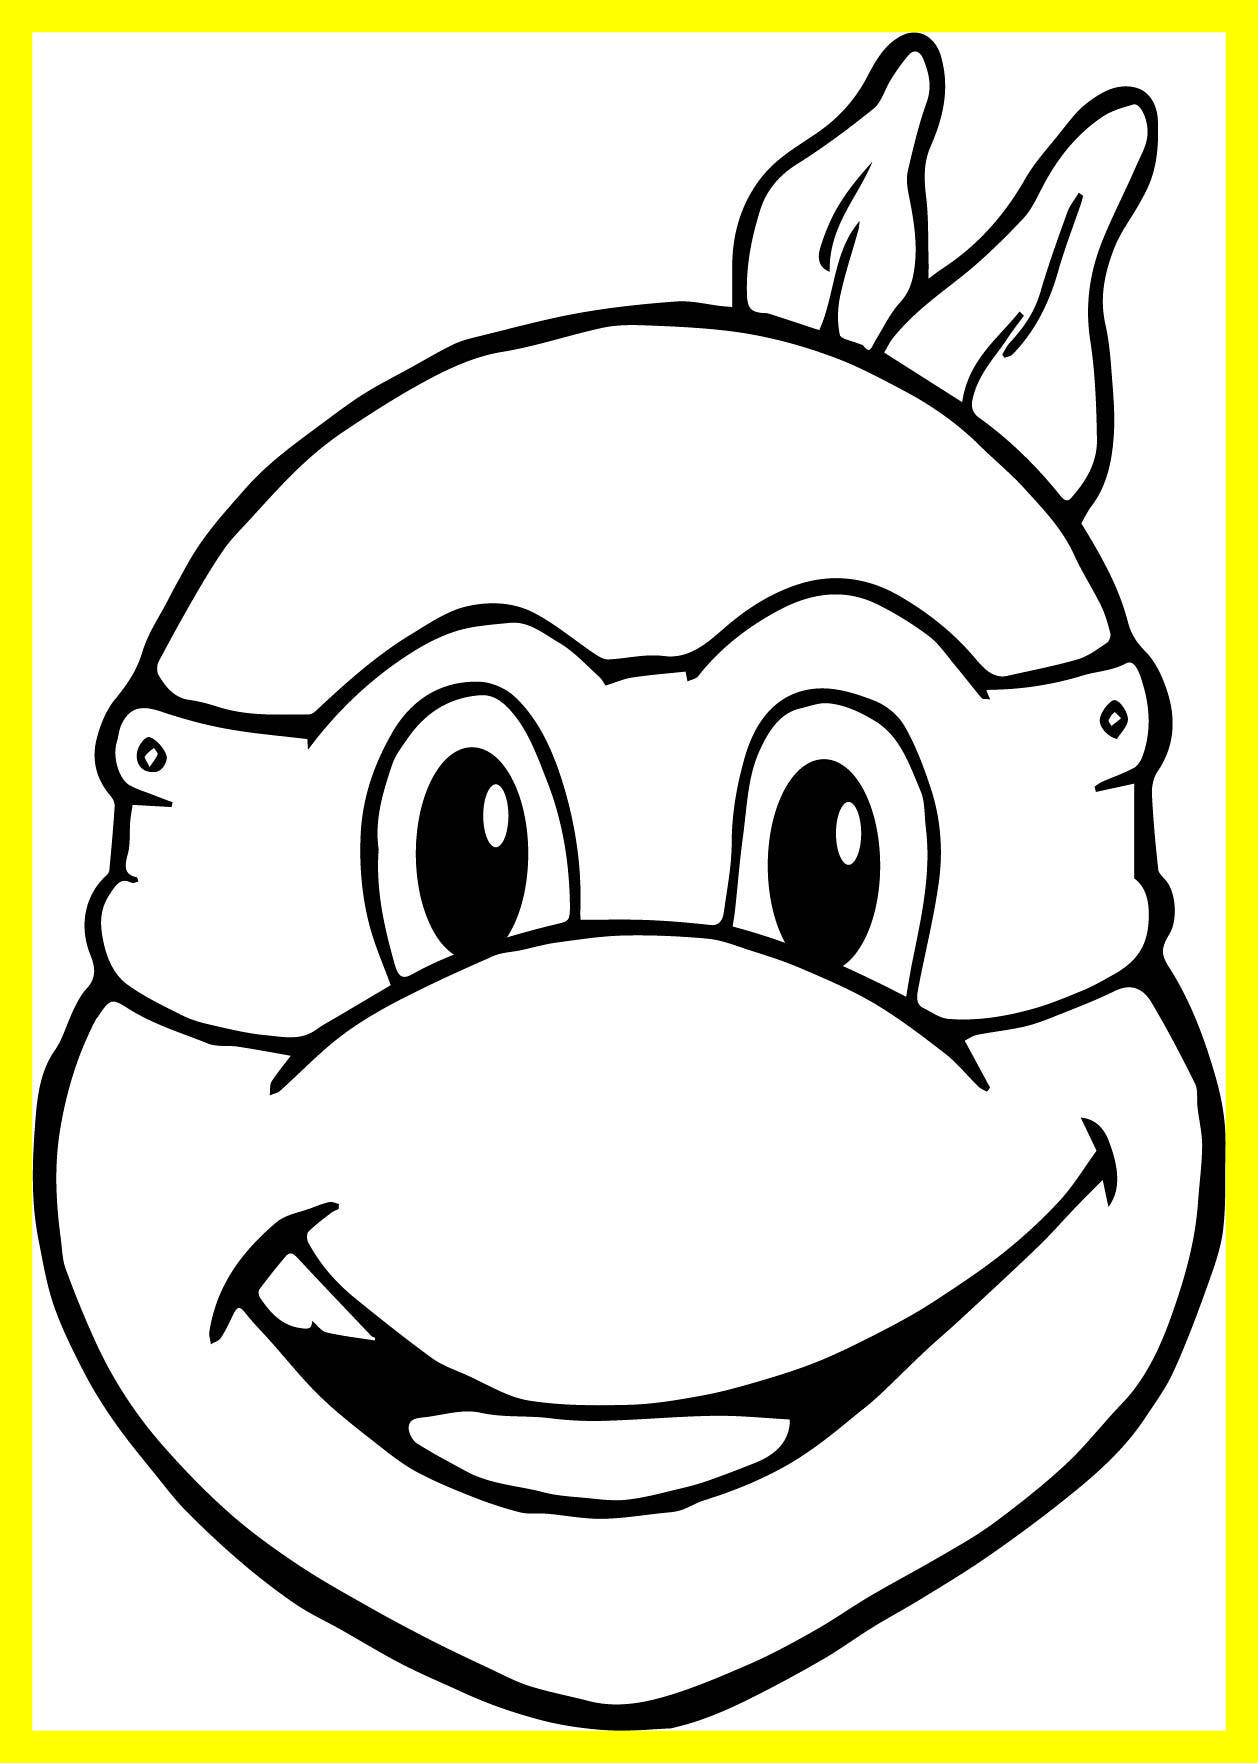 1258x1763 Awesome Ninja Turtles Head To Coloring Pages Wecoloringpage Pict